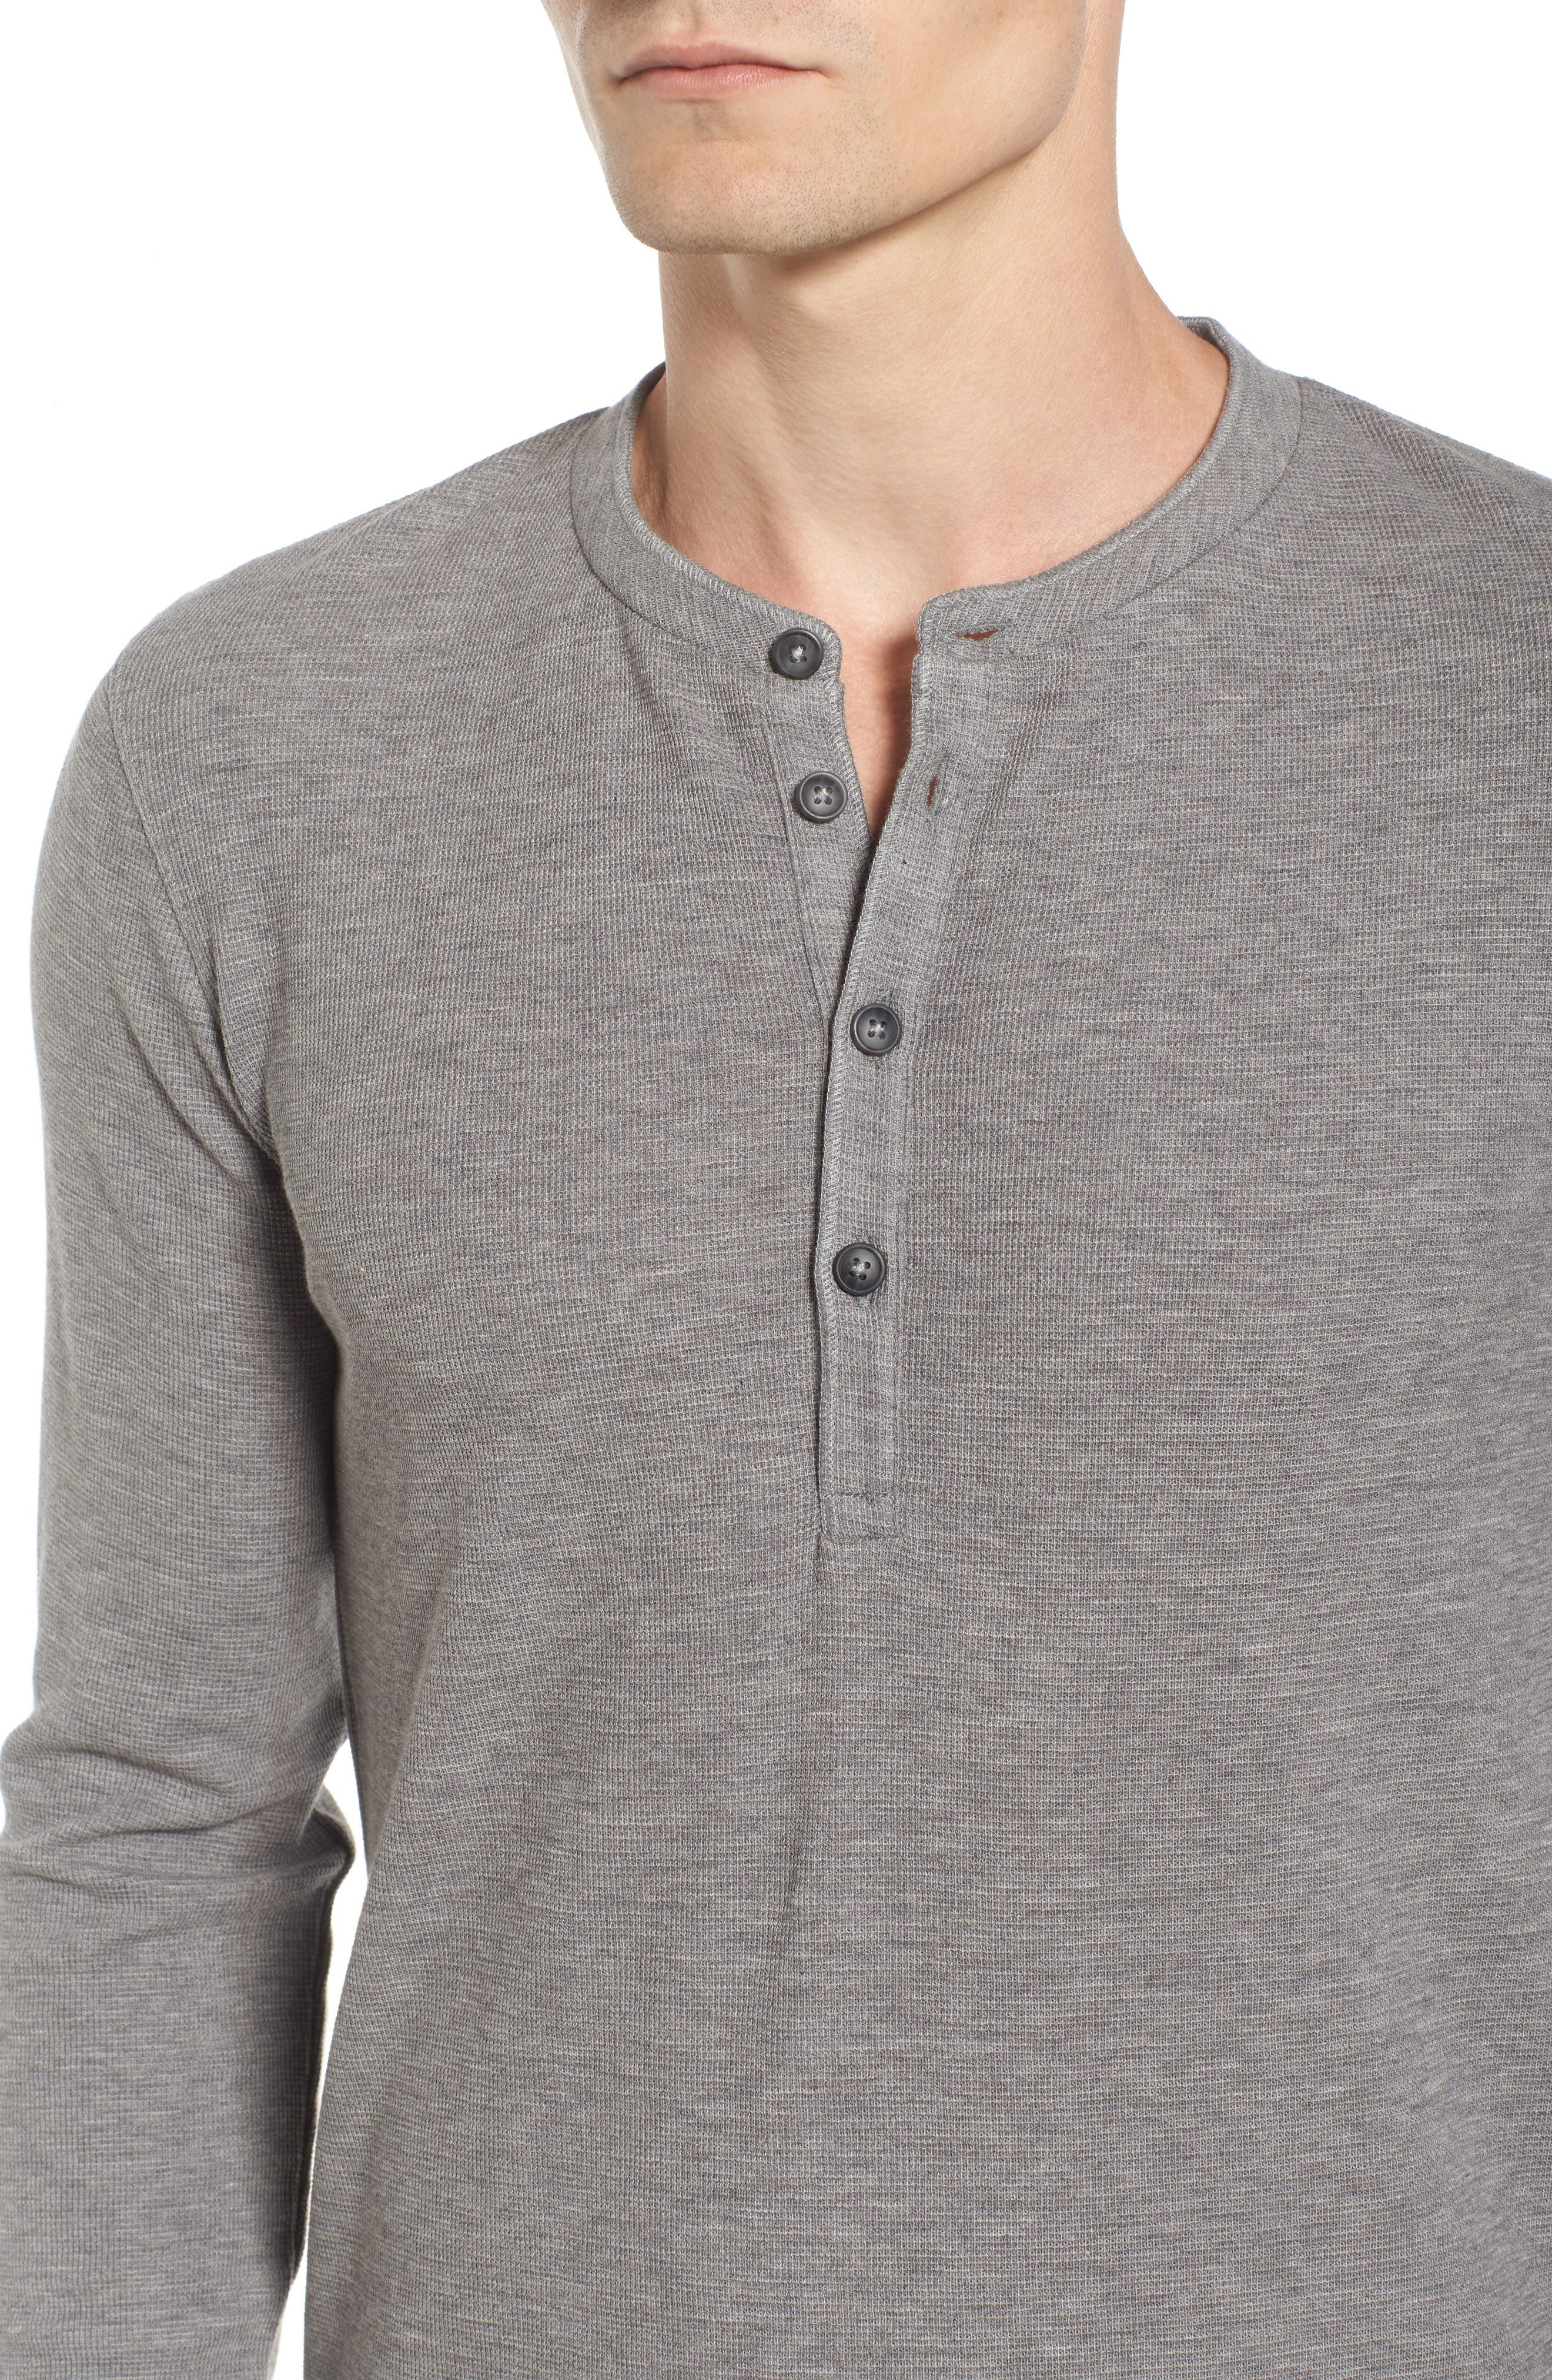 Topsider Thermal Henley,                             Alternate thumbnail 4, color,                             051